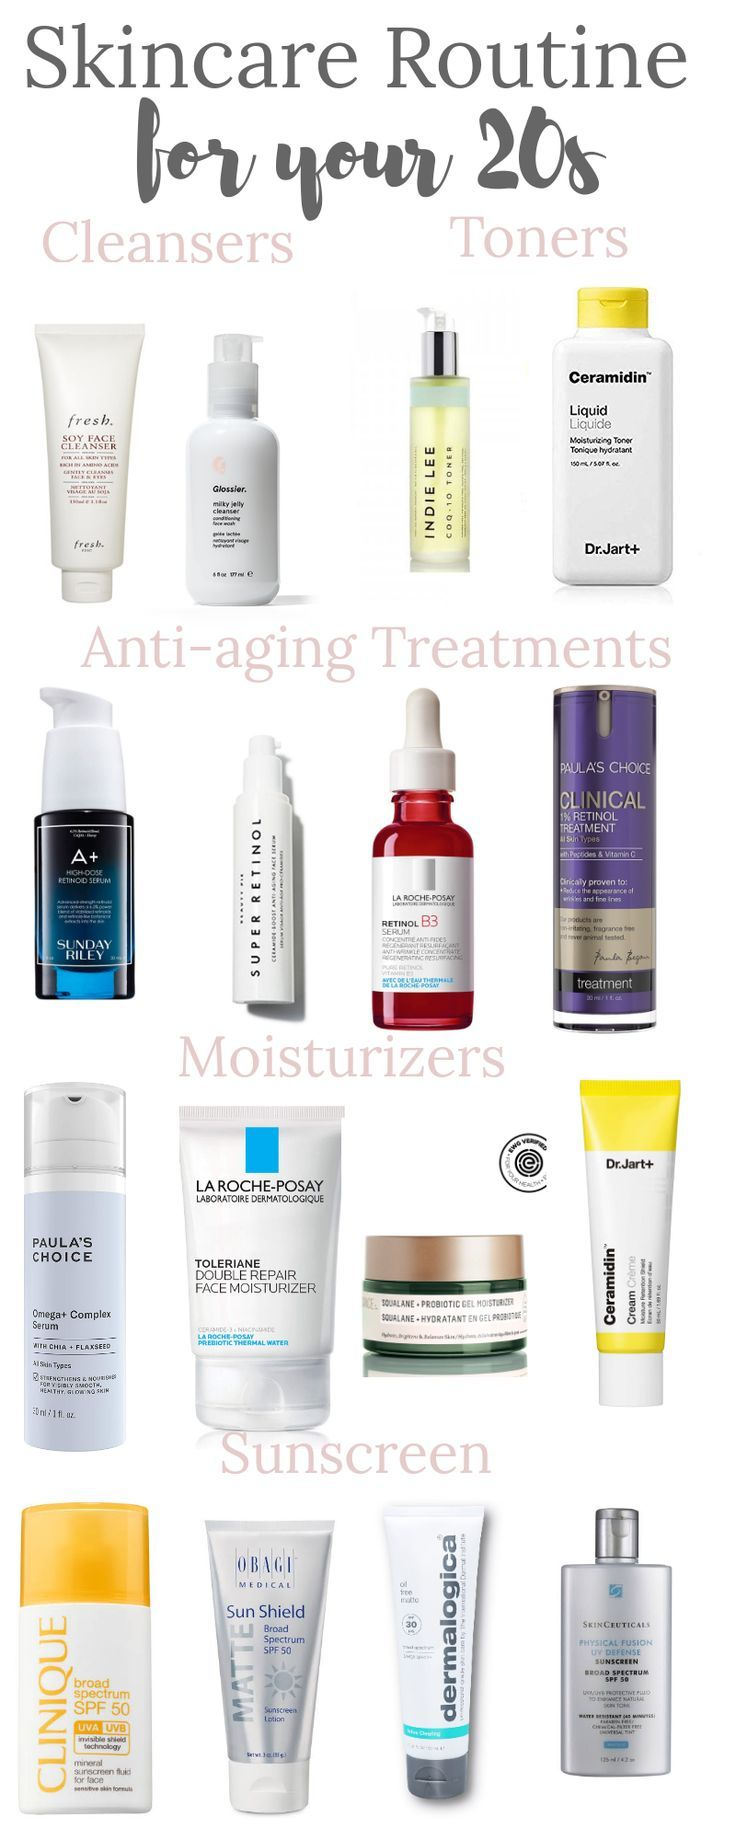 Perfect Skincare Routine For 20s In 2020 Skin Care Routine Cleanser And Toner Skin Care